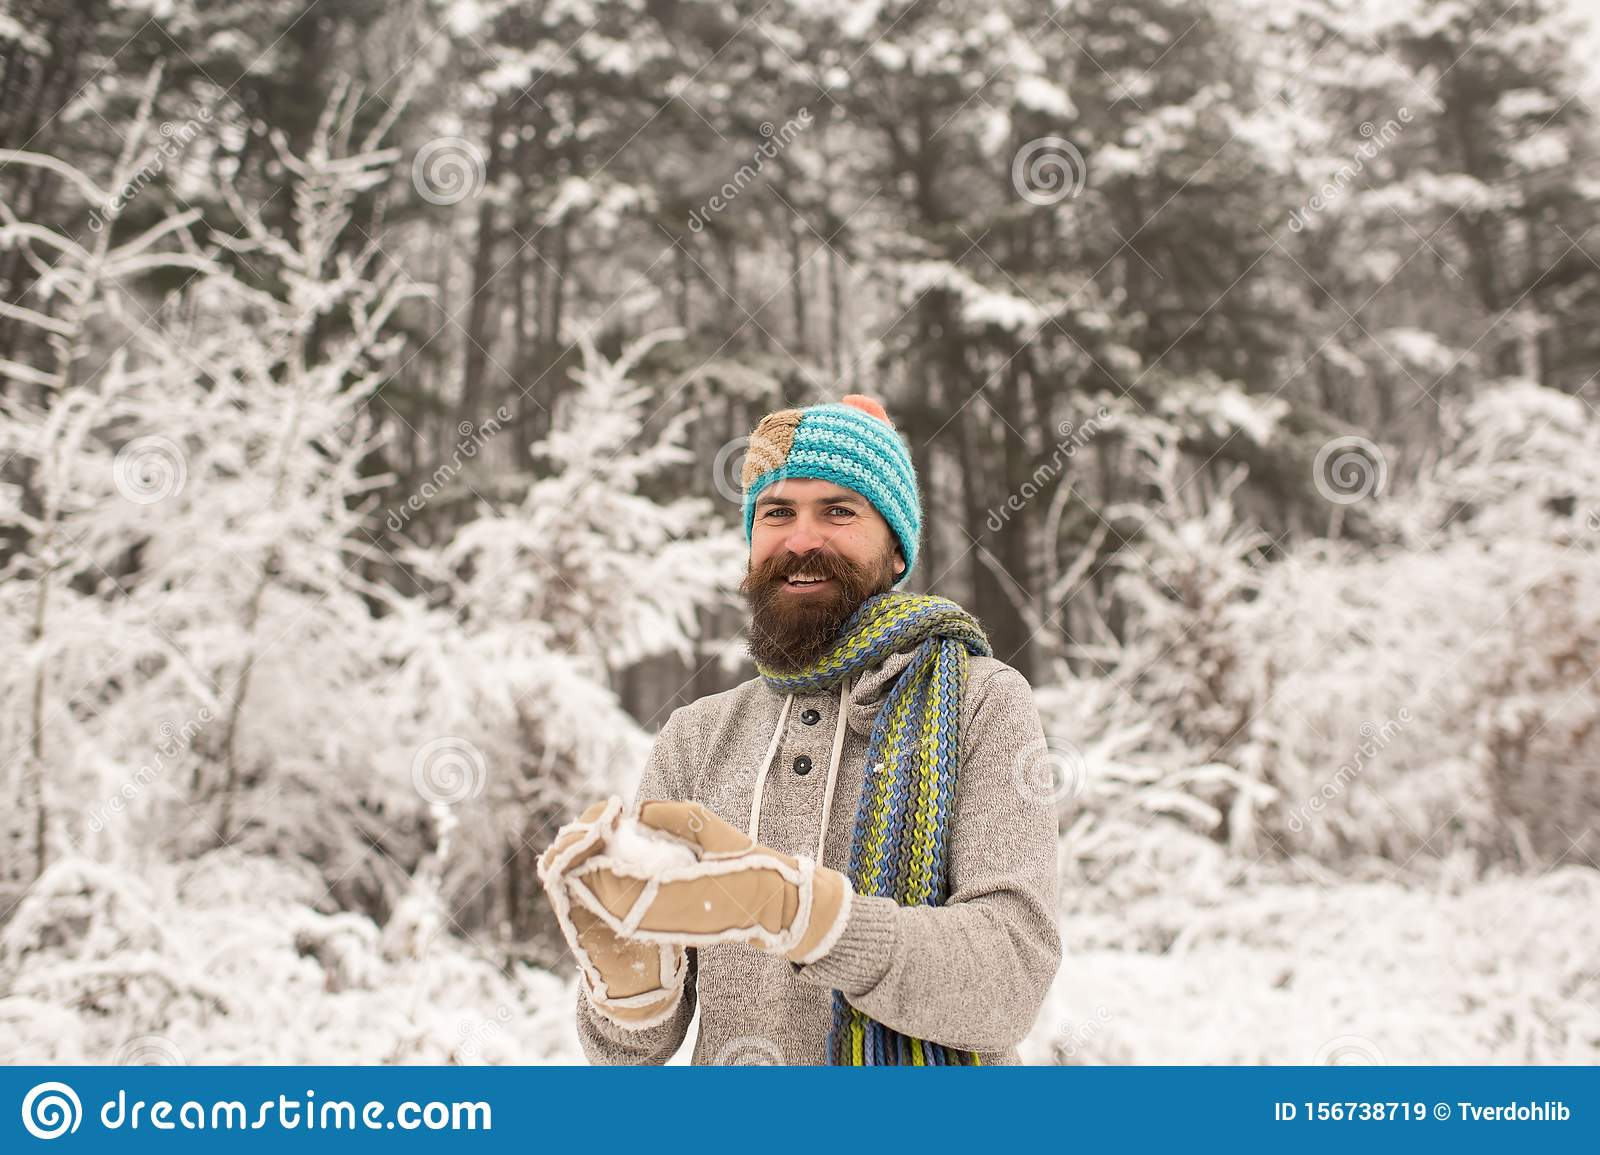 Bearded man smile with snowball in snowy forest